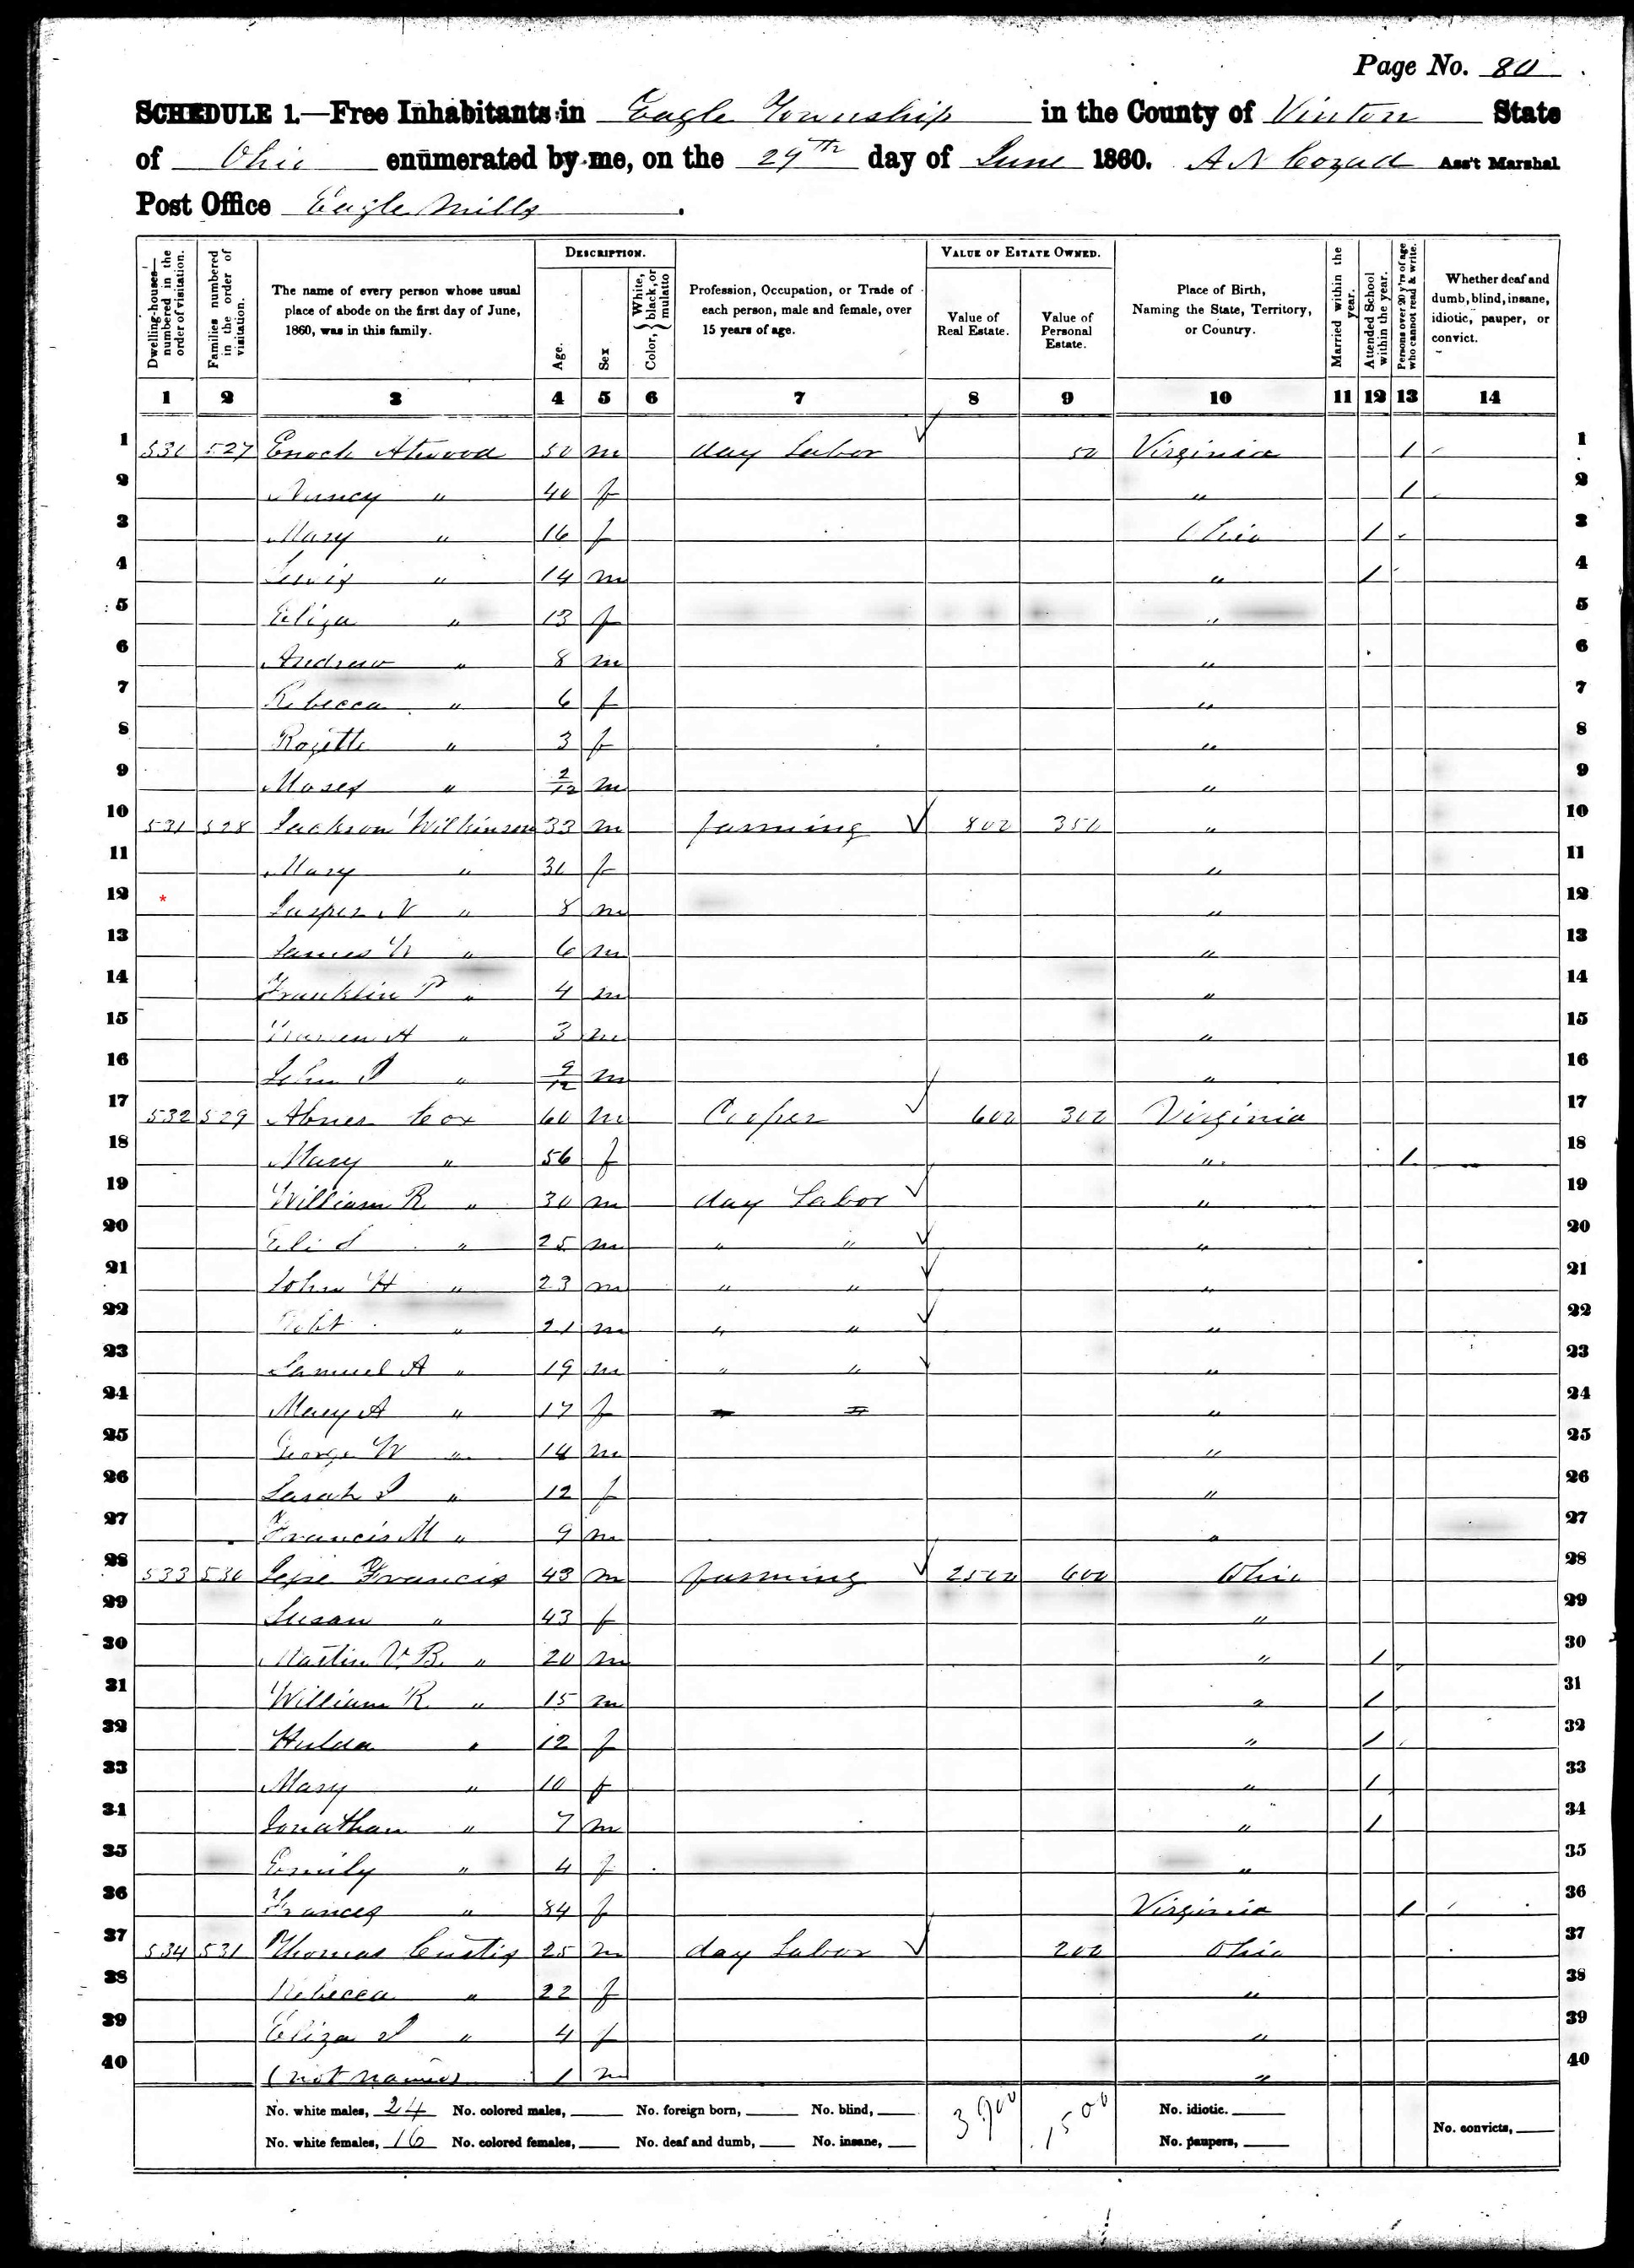 Illinois bureau county ohio - County Ohio While He Was Superintendent Of The Schools In Buda In 1879 And They Were Married June 26 1879 In Bureau County Illinois